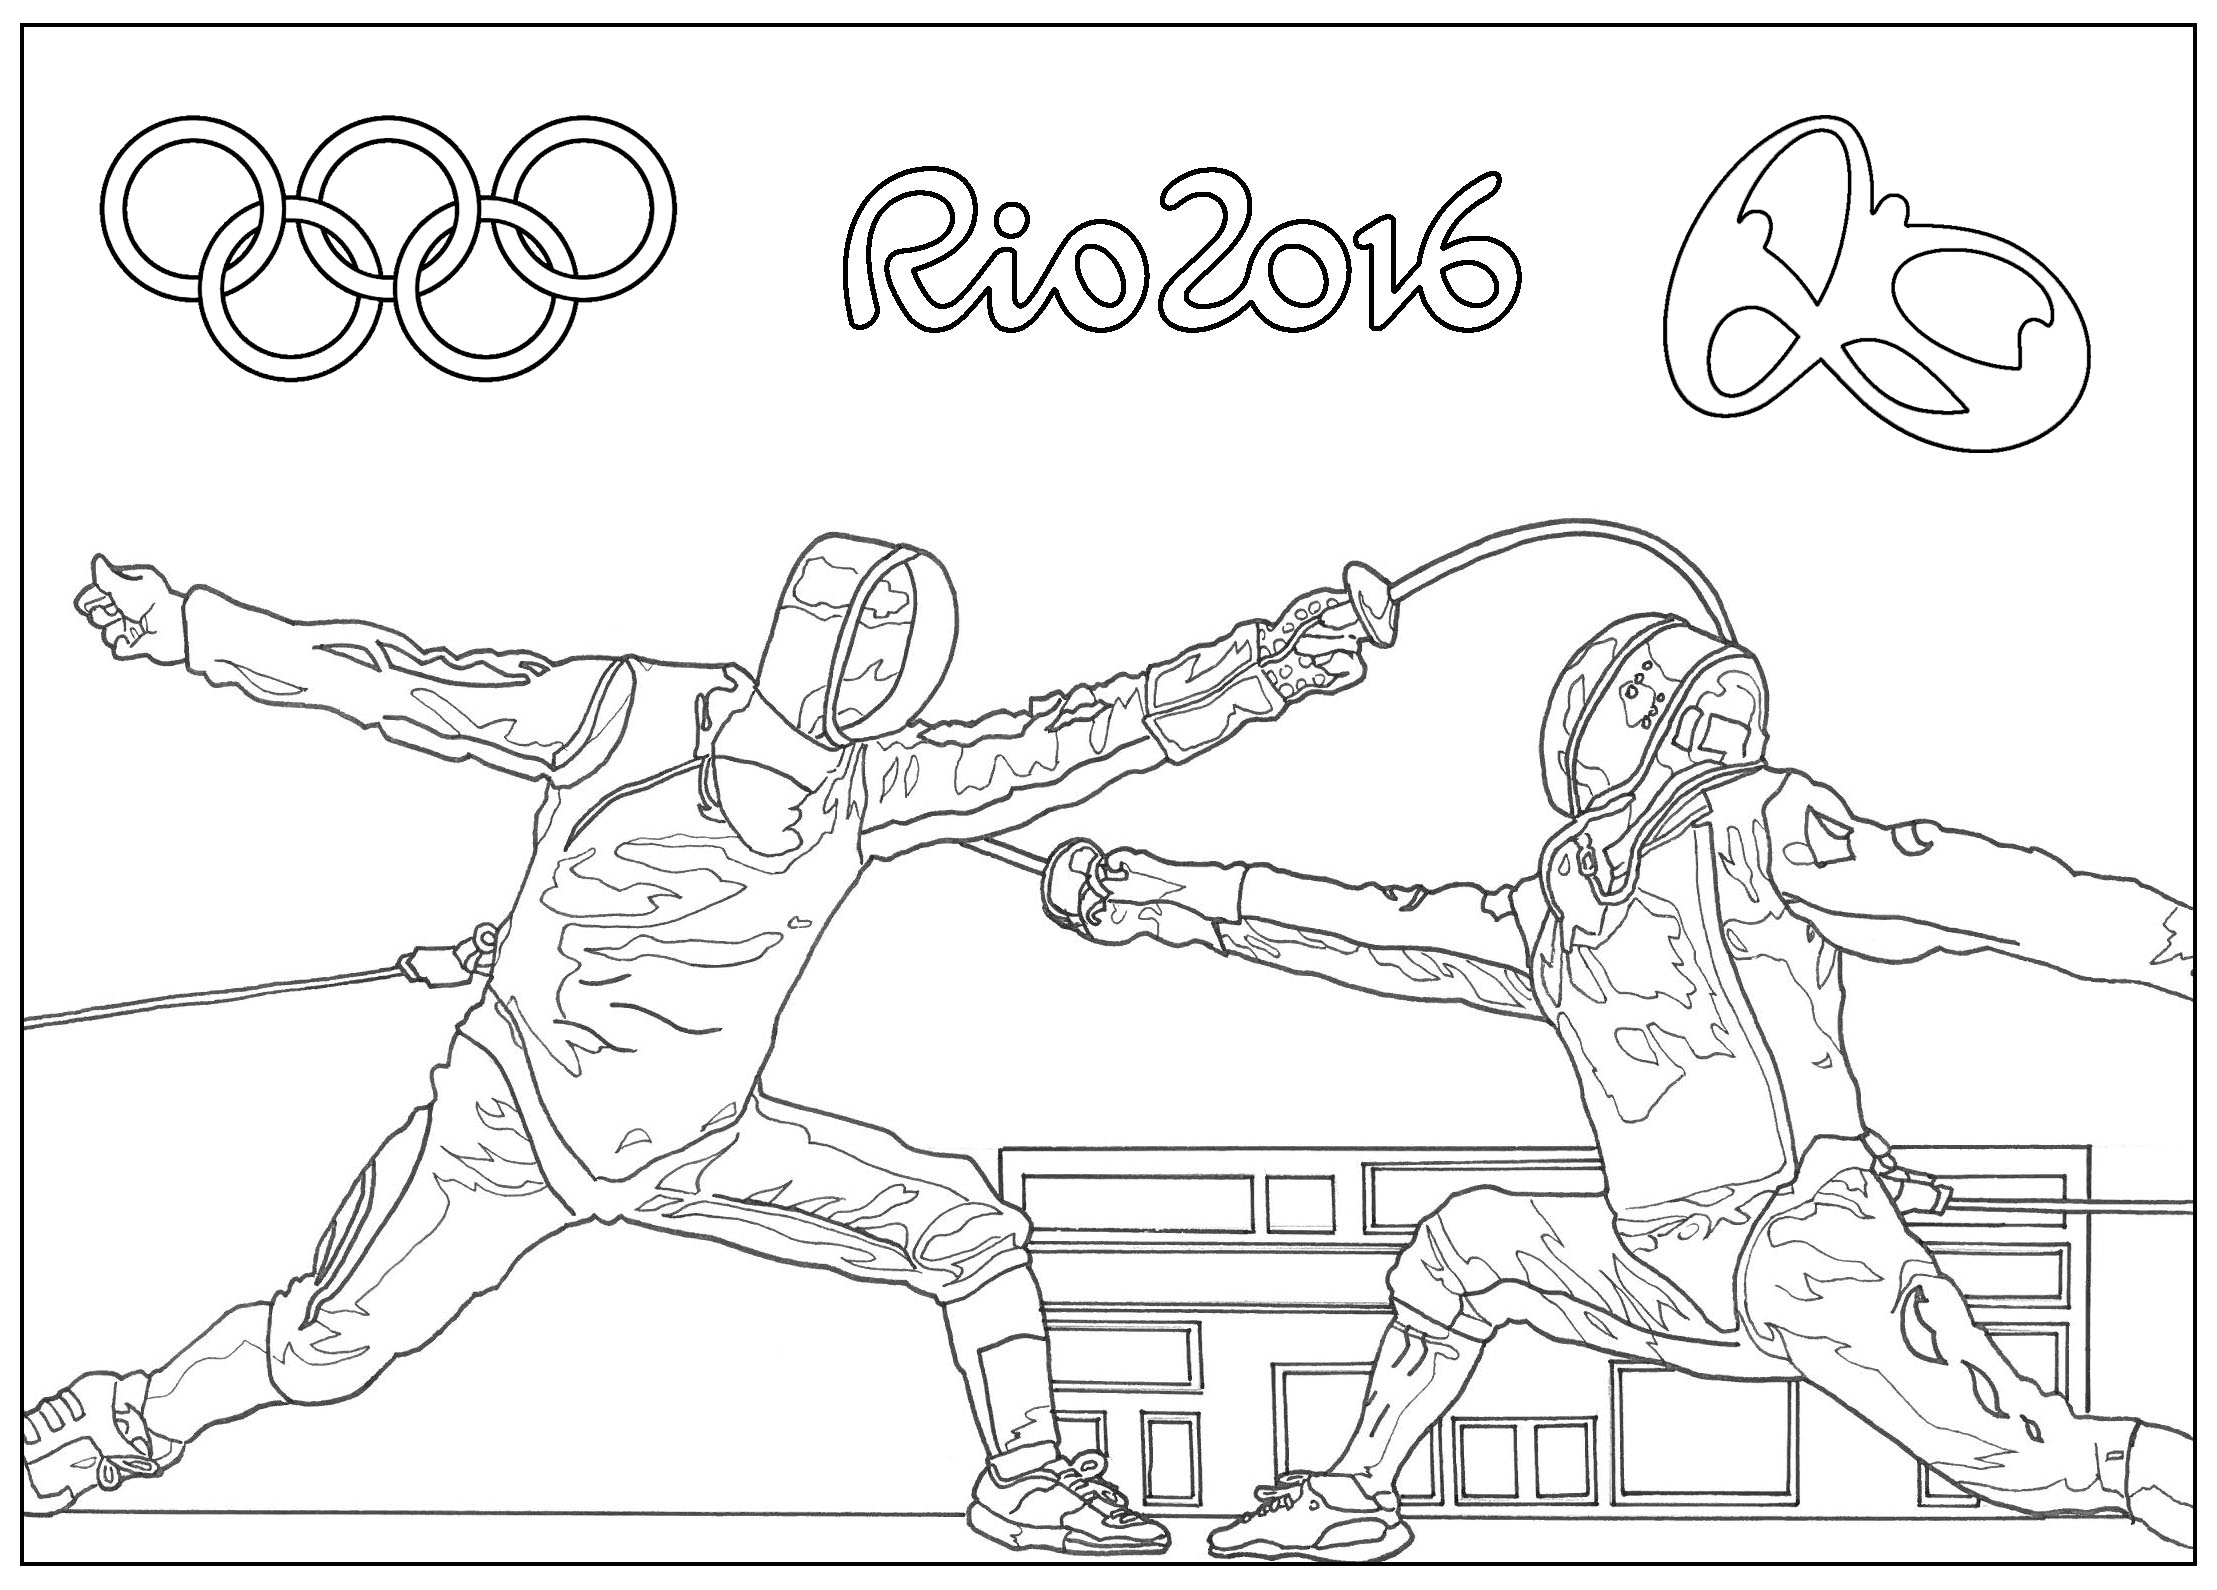 Rio 2016 Olympic Games Fencing Olympic & Sport Adult Coloring Pages Collection Of Olympic Swimming Coloring Pages Best Coloring Pages Games Image Printable